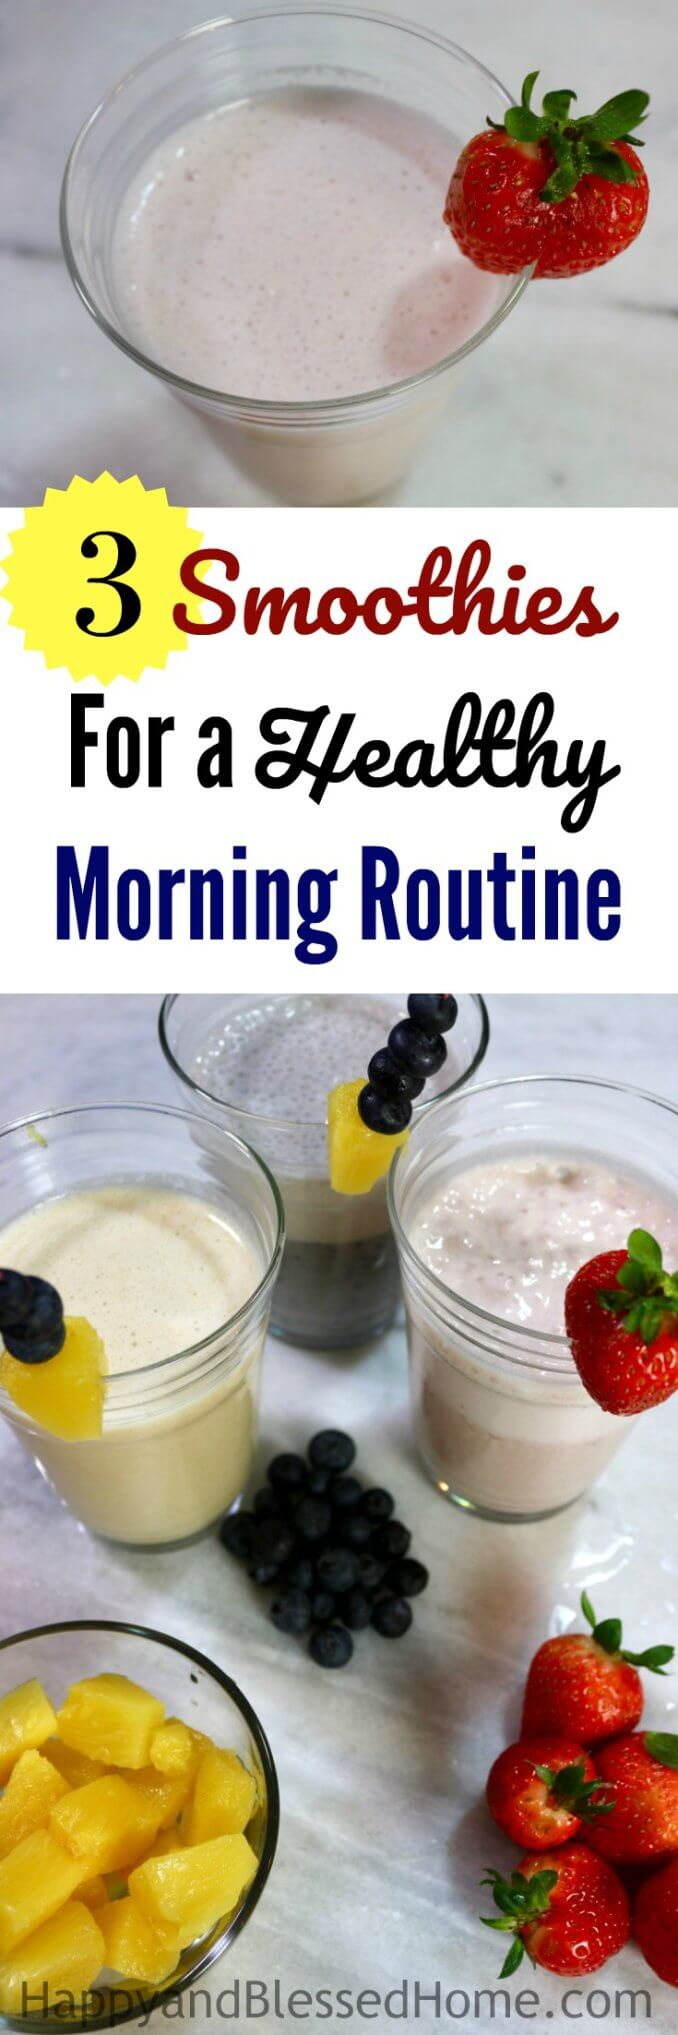 3 Easy and Tasty Smoothie Recipes for a Healthy Morning Routine